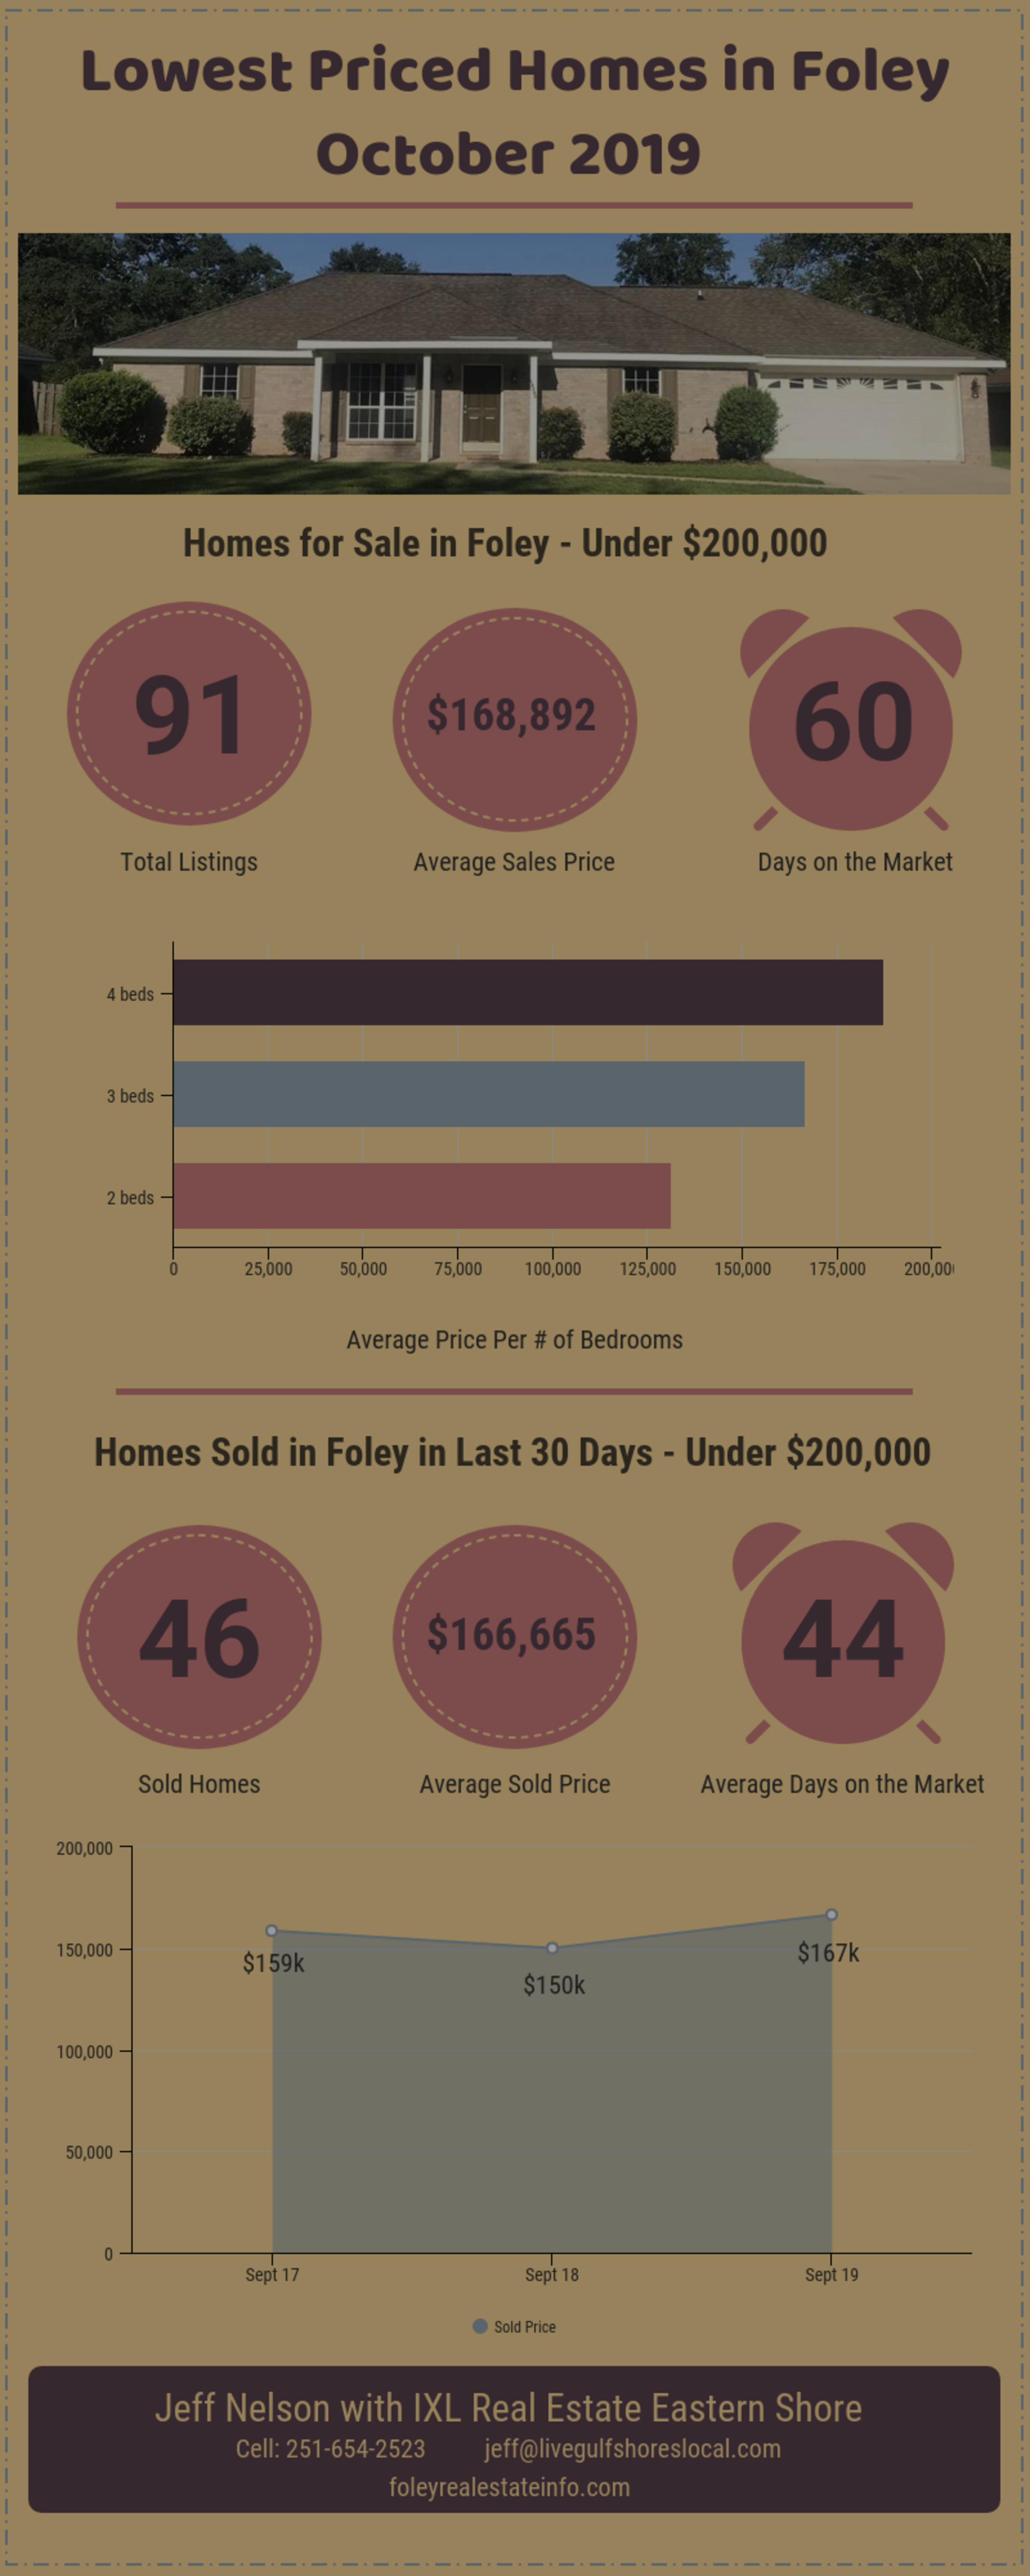 Lowest Priced Homes in Foley – October 2019